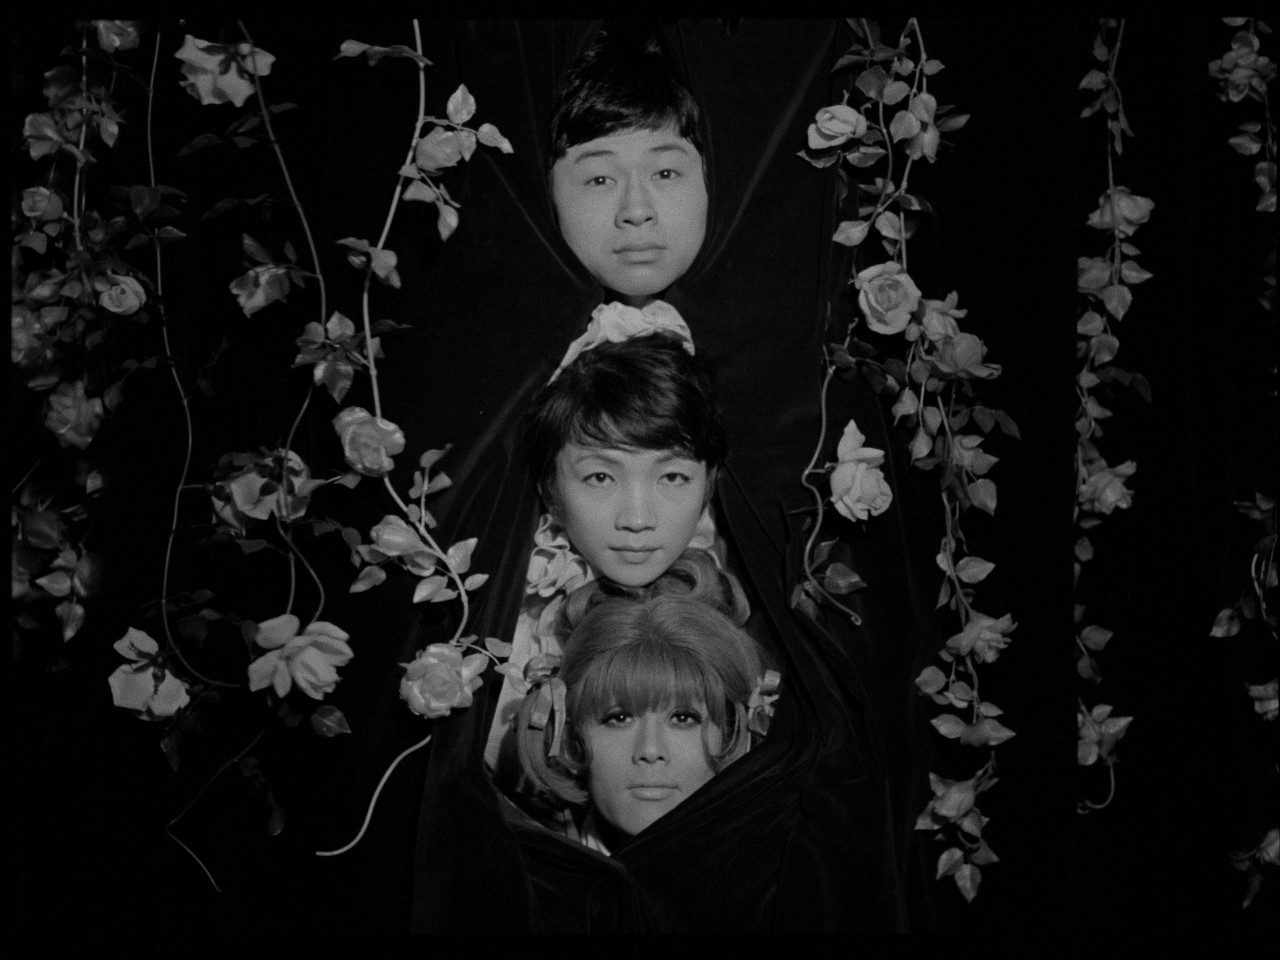 Funeral parade of roses - 7